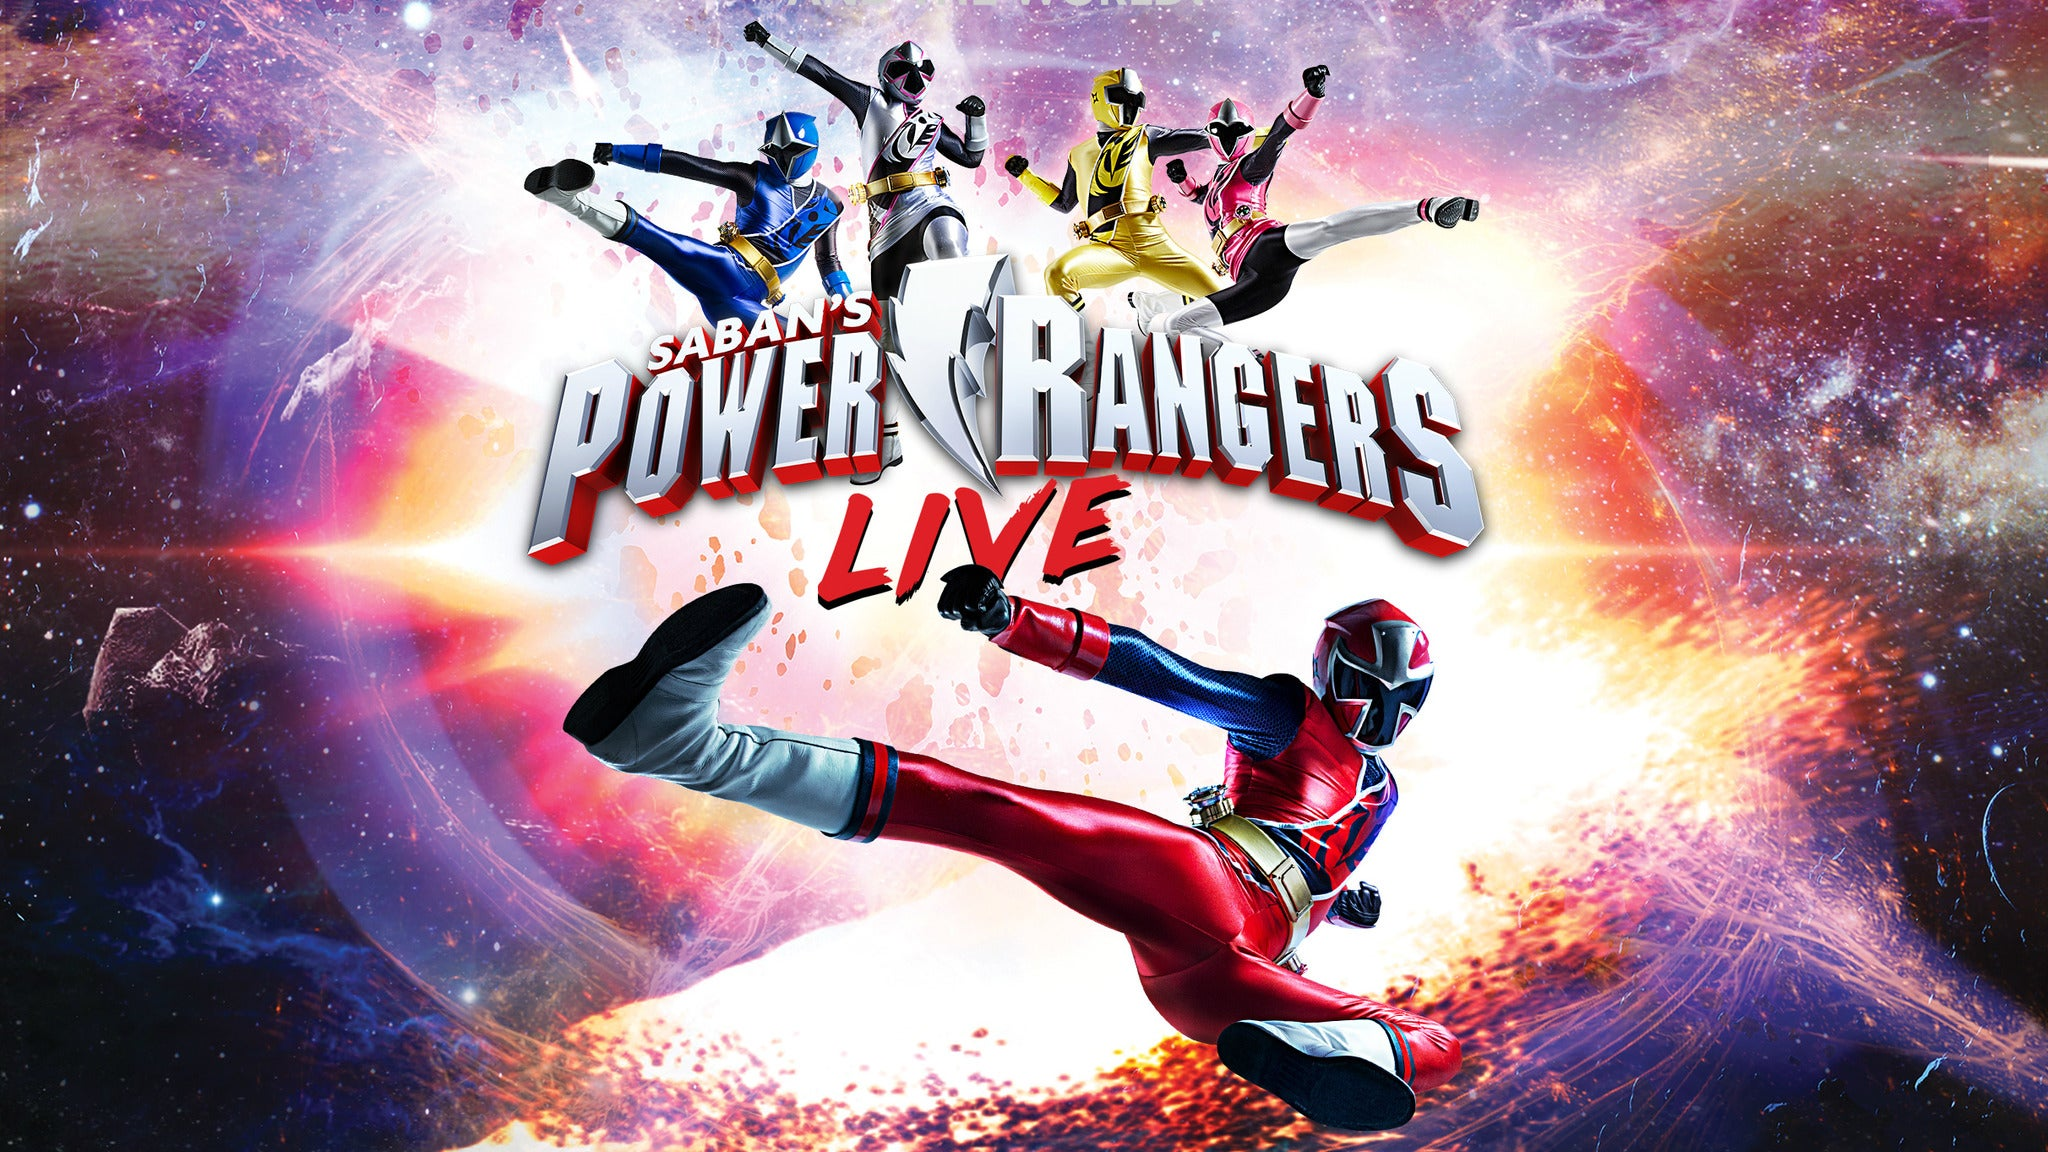 Power Rangers Live! at Count Basie Theatre